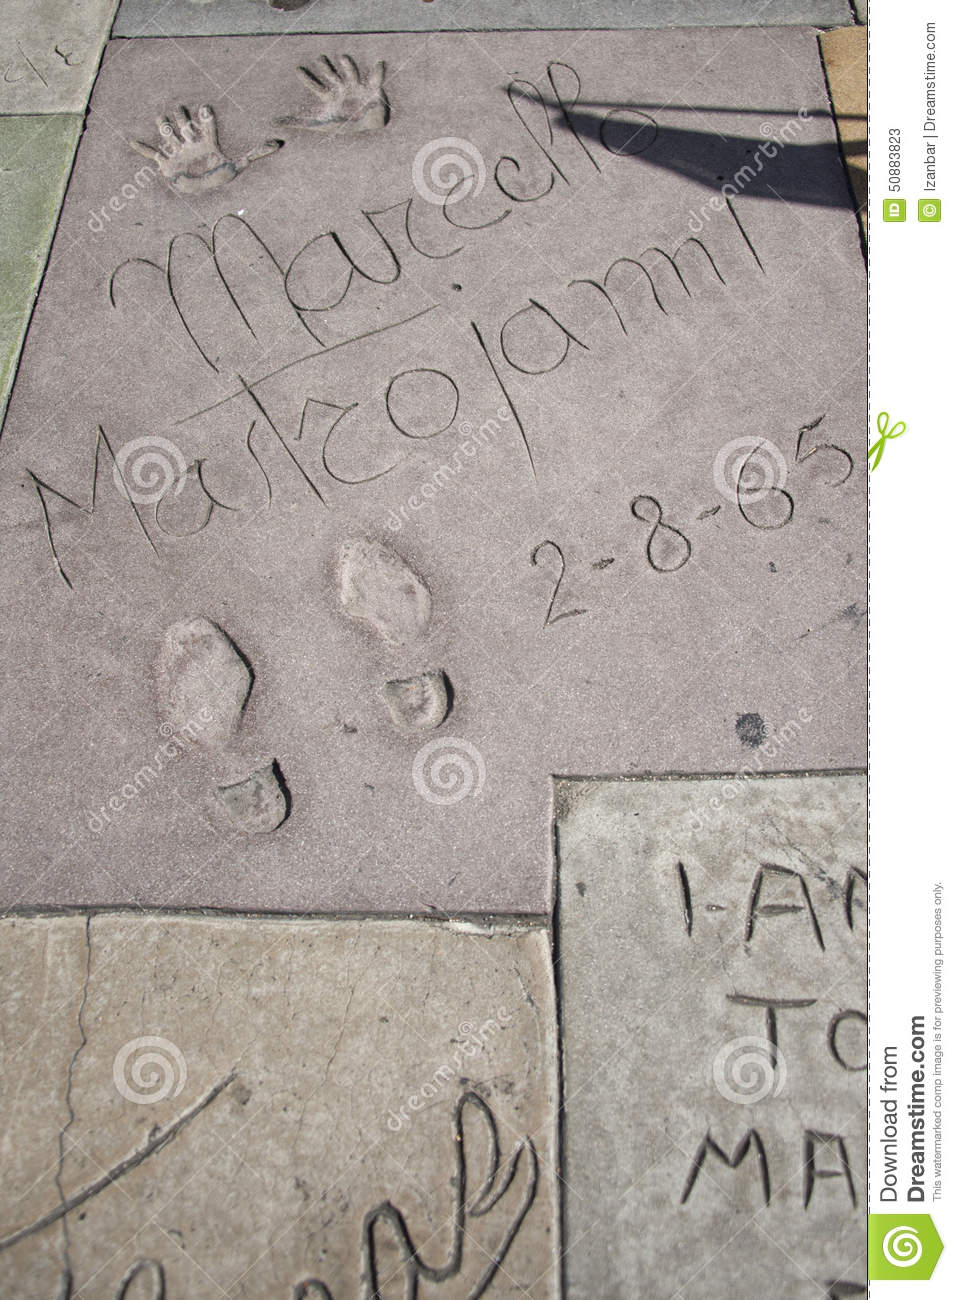 Grauman's Chinese Theatre - Wikipedia